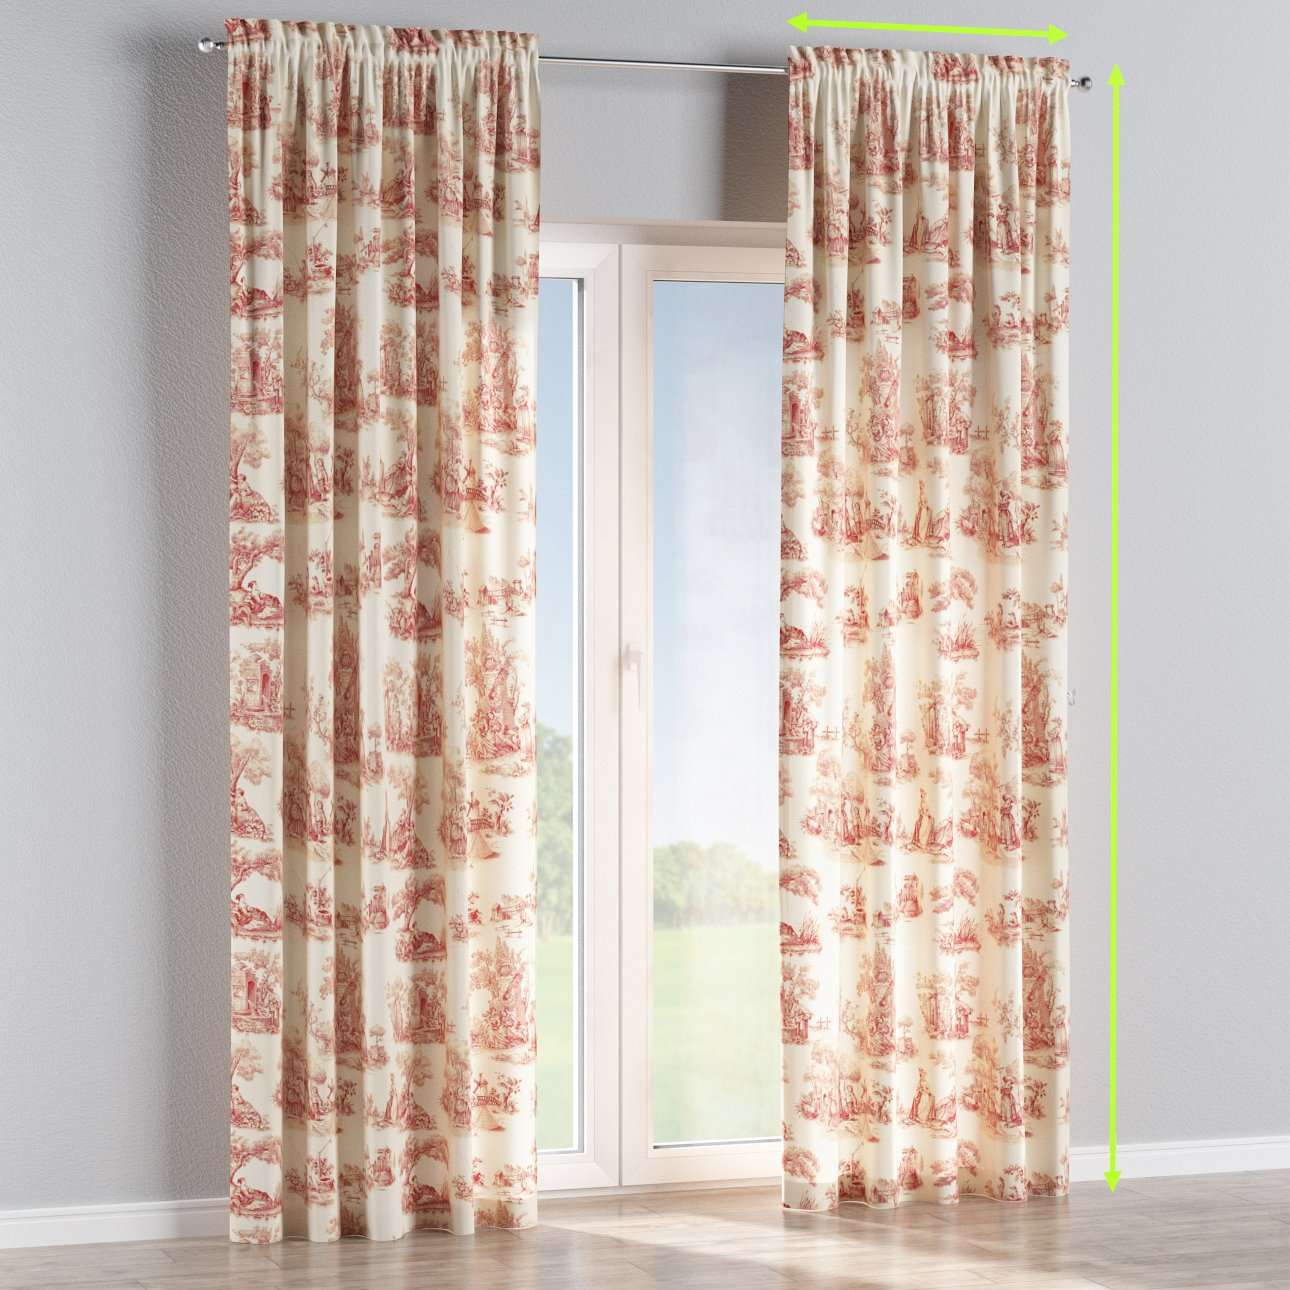 Slot and frill lined curtains in collection Avinon, fabric: 132-15